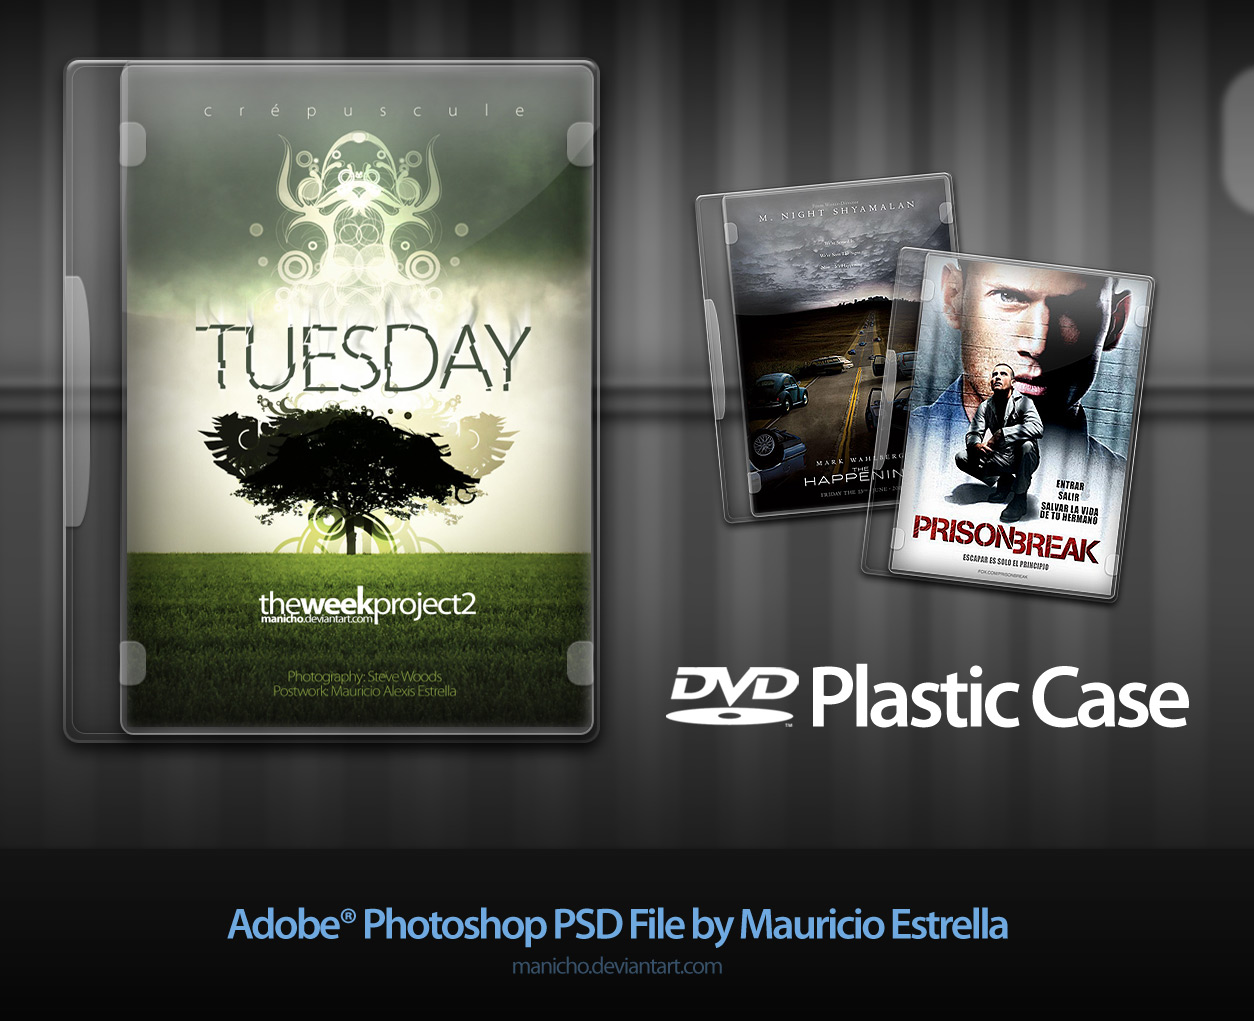 DVD Plastic Case PSD file by manicho